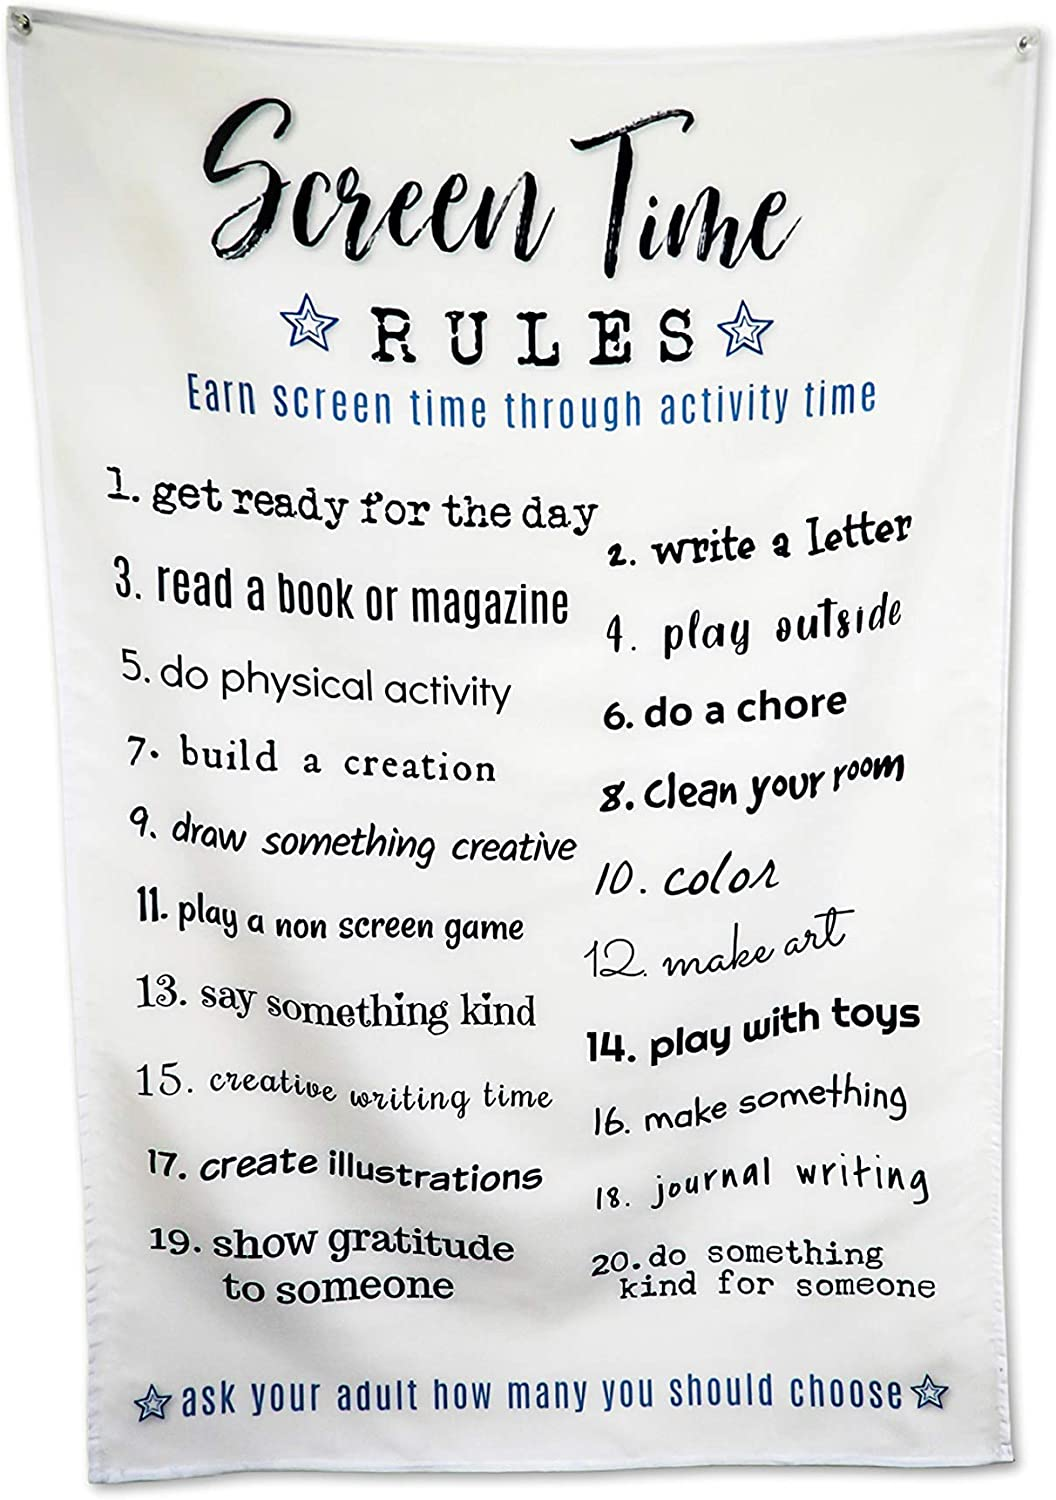 Screen time rules tapestry